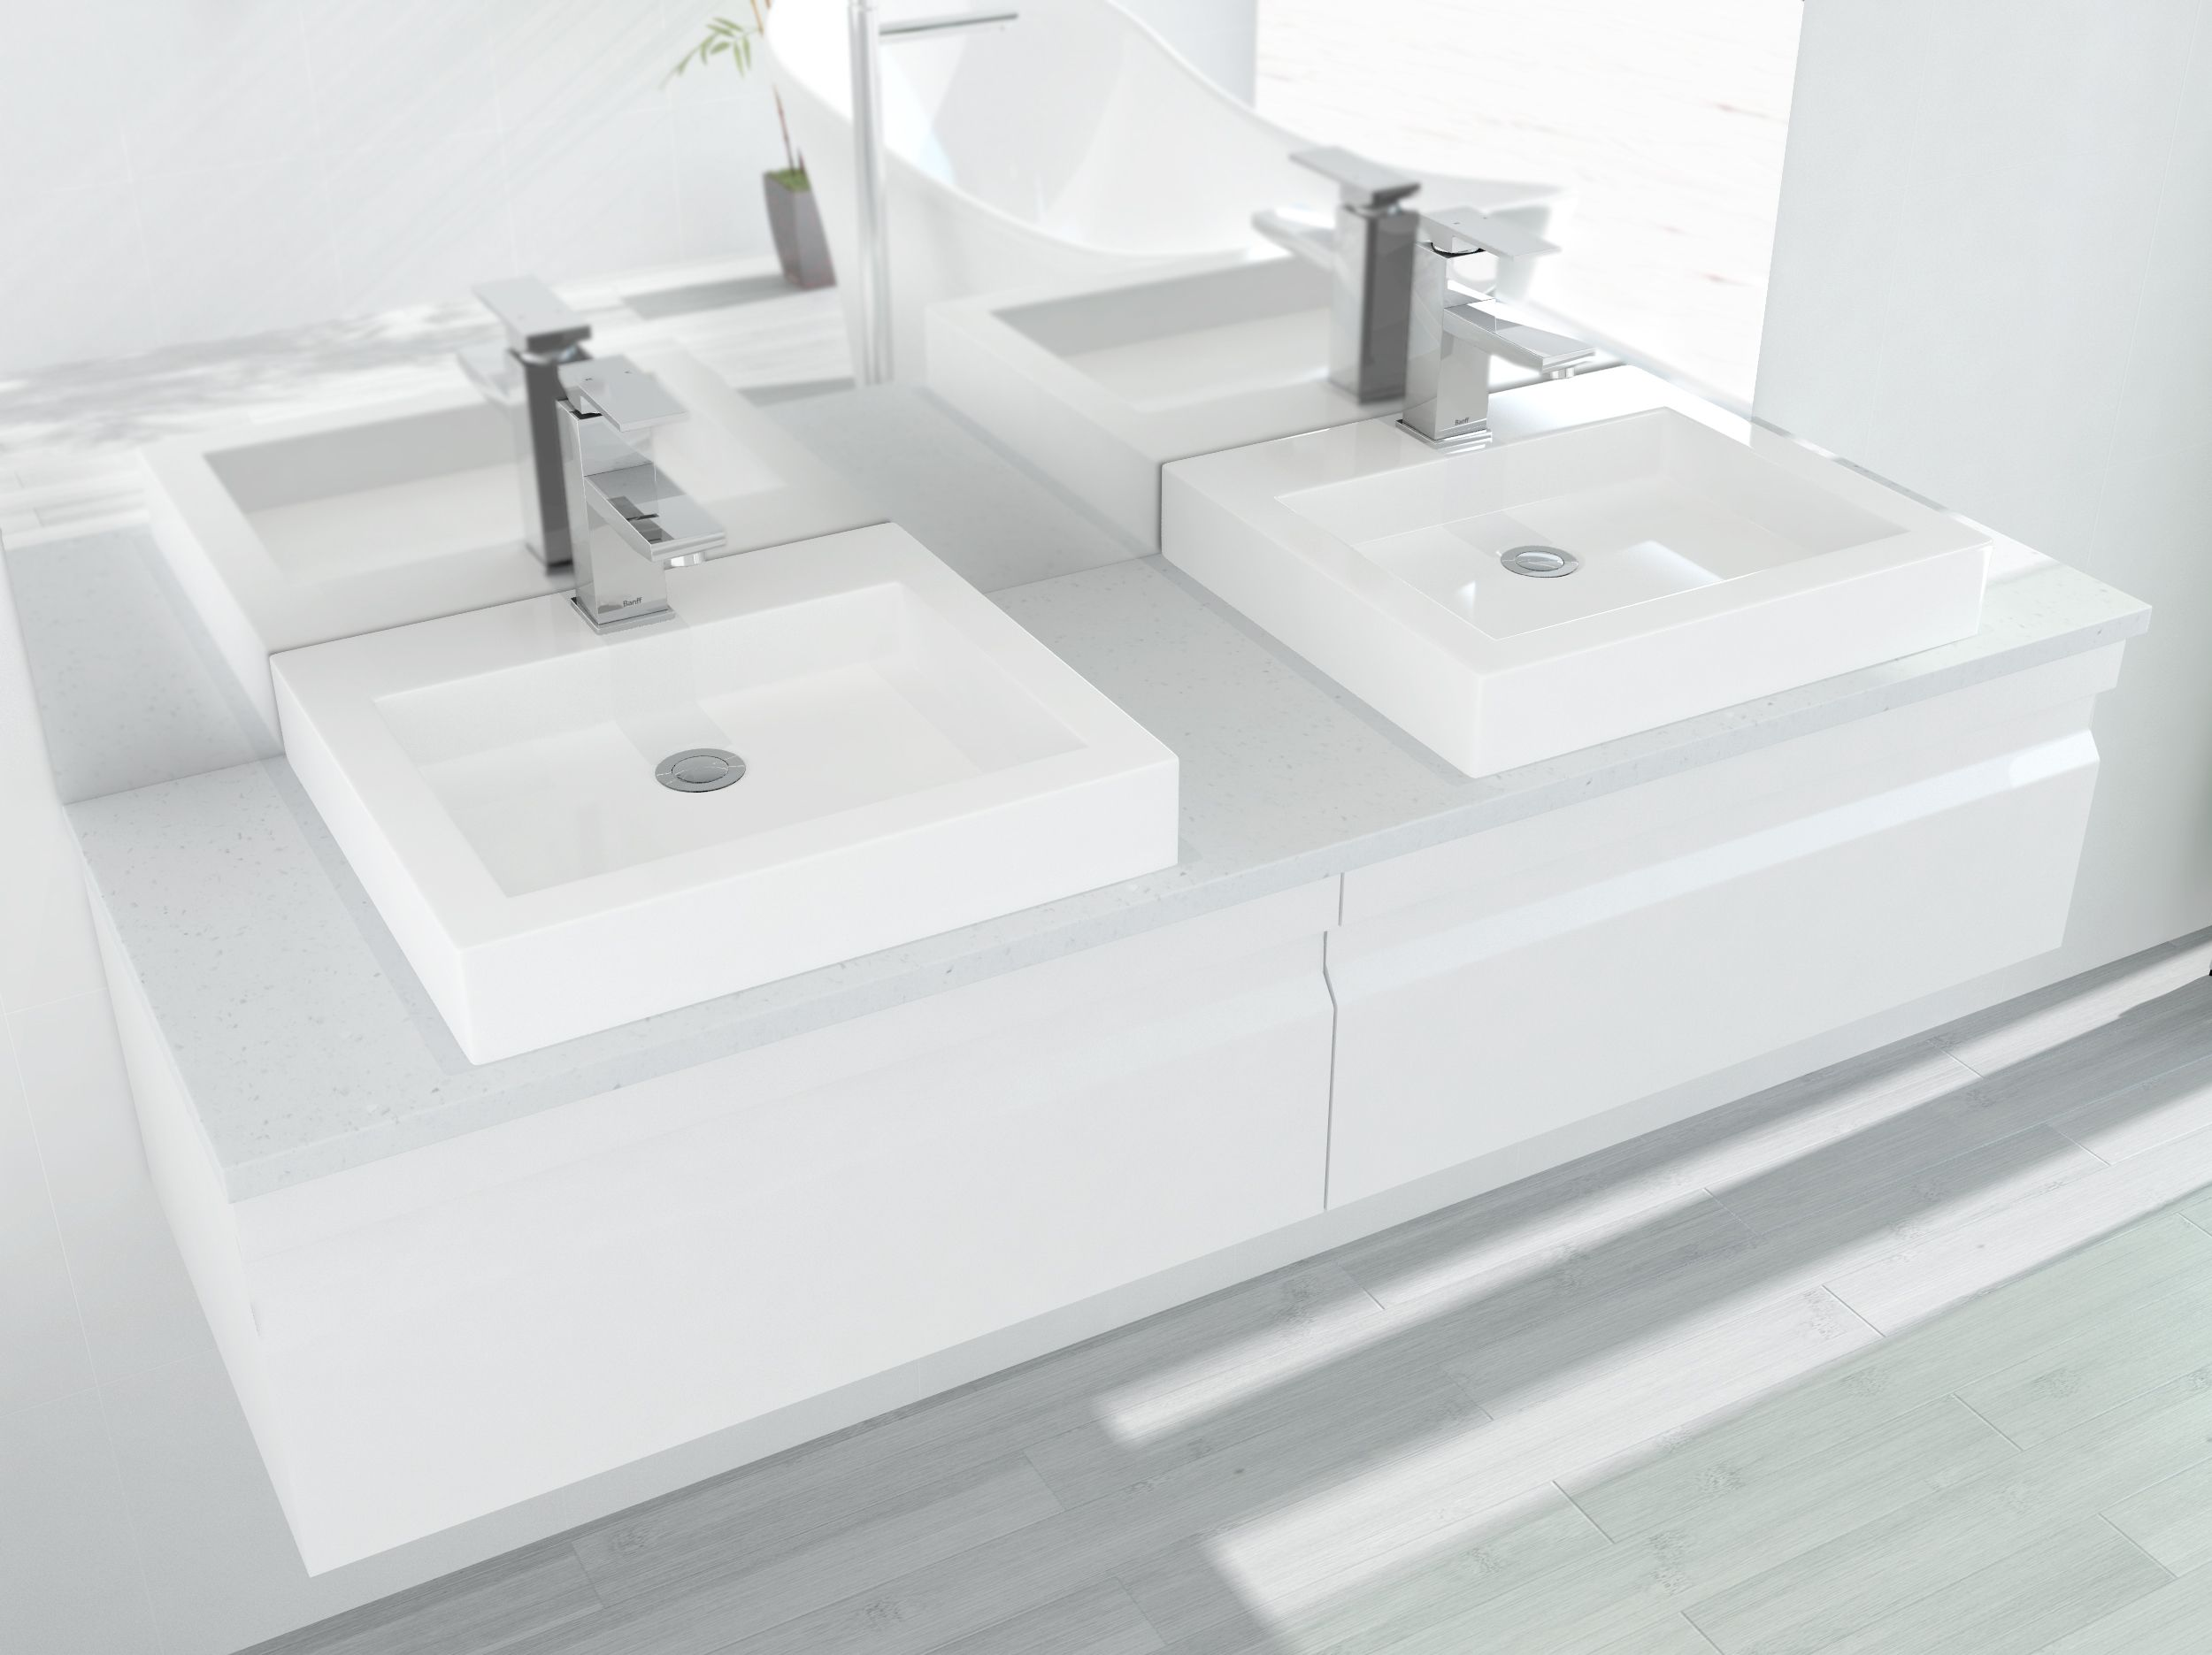 A pair of shallow-depth above-bench basins and two Damien II basin mixers (by Banff). The vanity area is further defined and enhanced by the 1800 x 900 wall mirror featuring fine polished edges (by Klarga, famous makers of high quality mirrors and shower screens)